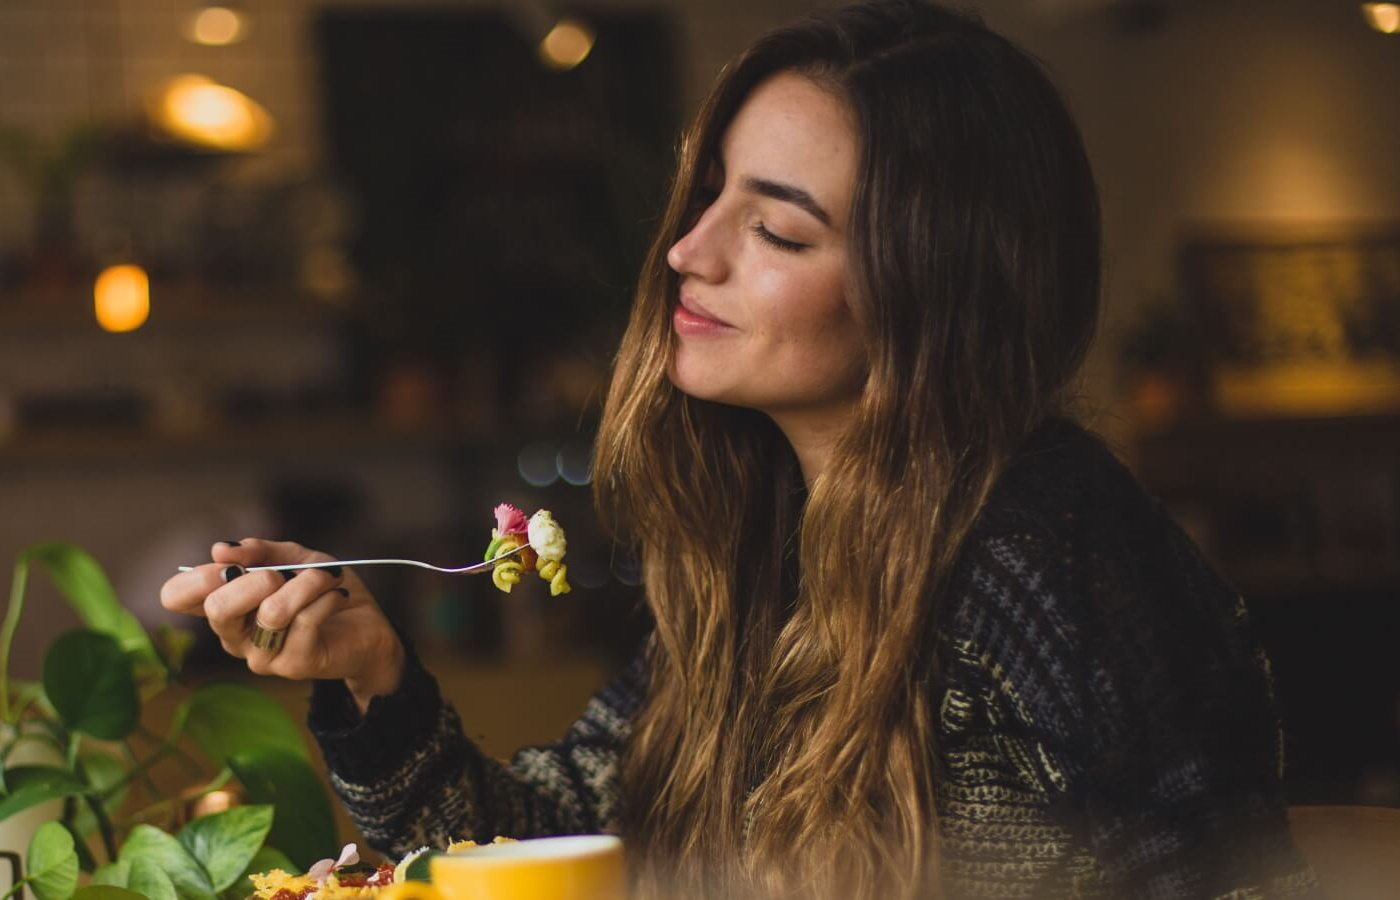 Savour your food. A woman enjoying their meal sitting at the table and smiling